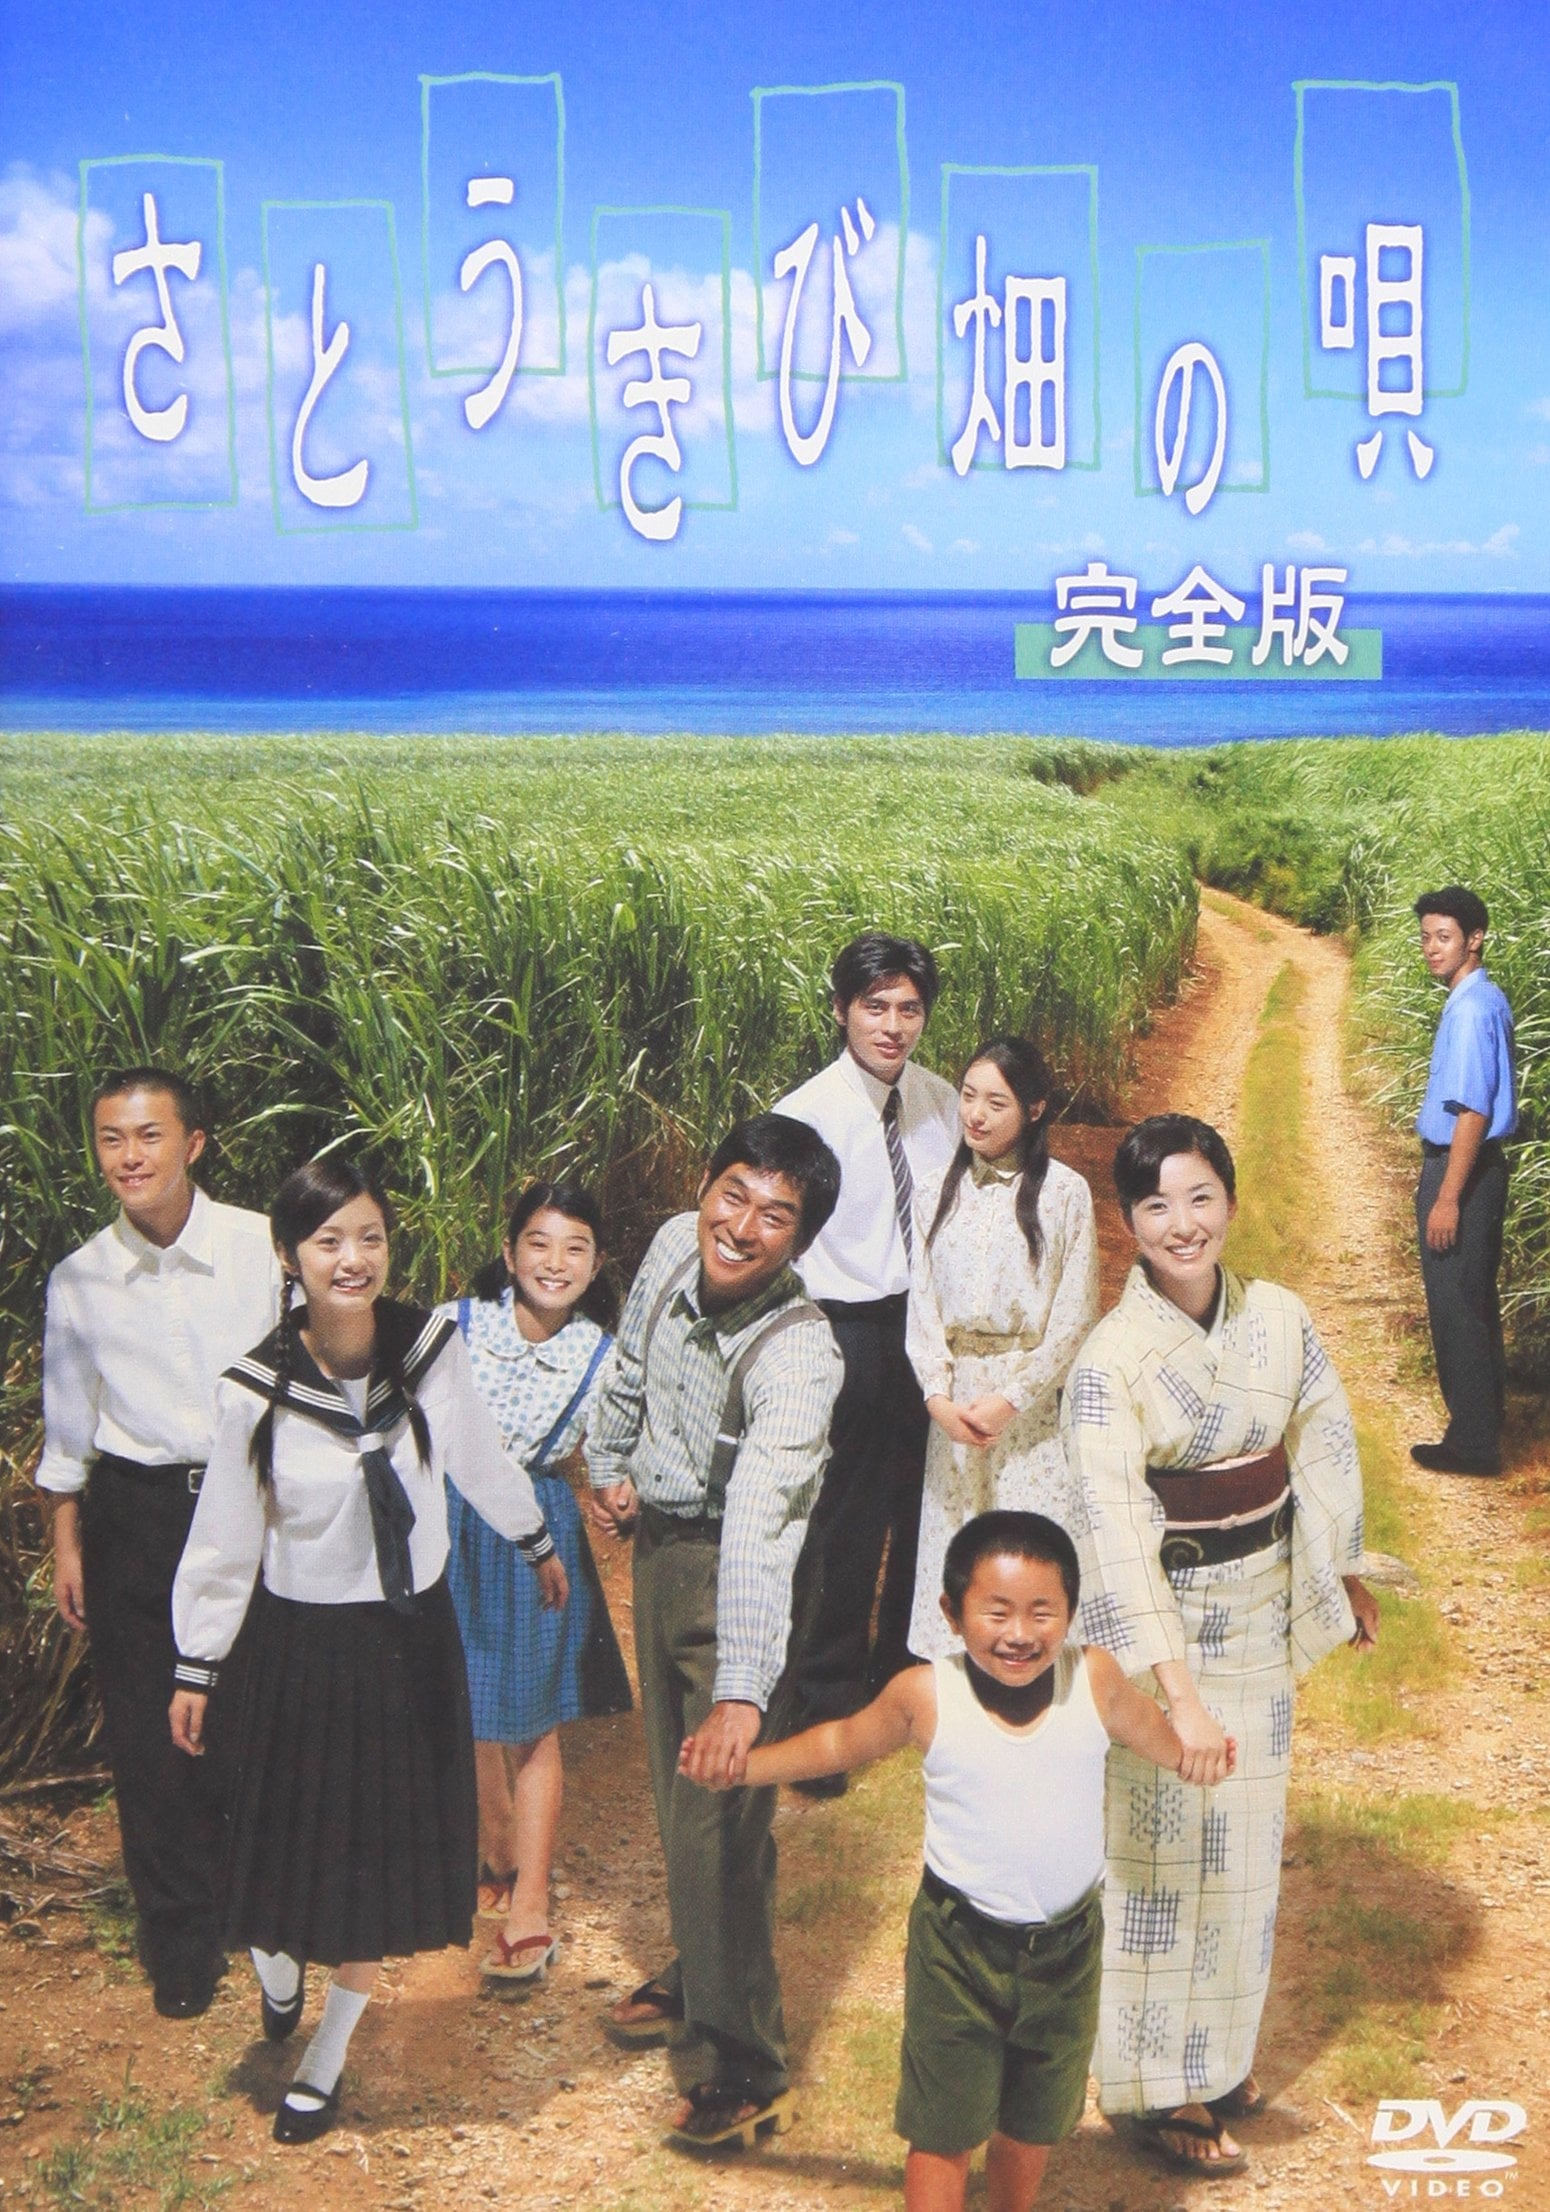 watch Song of the Canefields 2003 online free